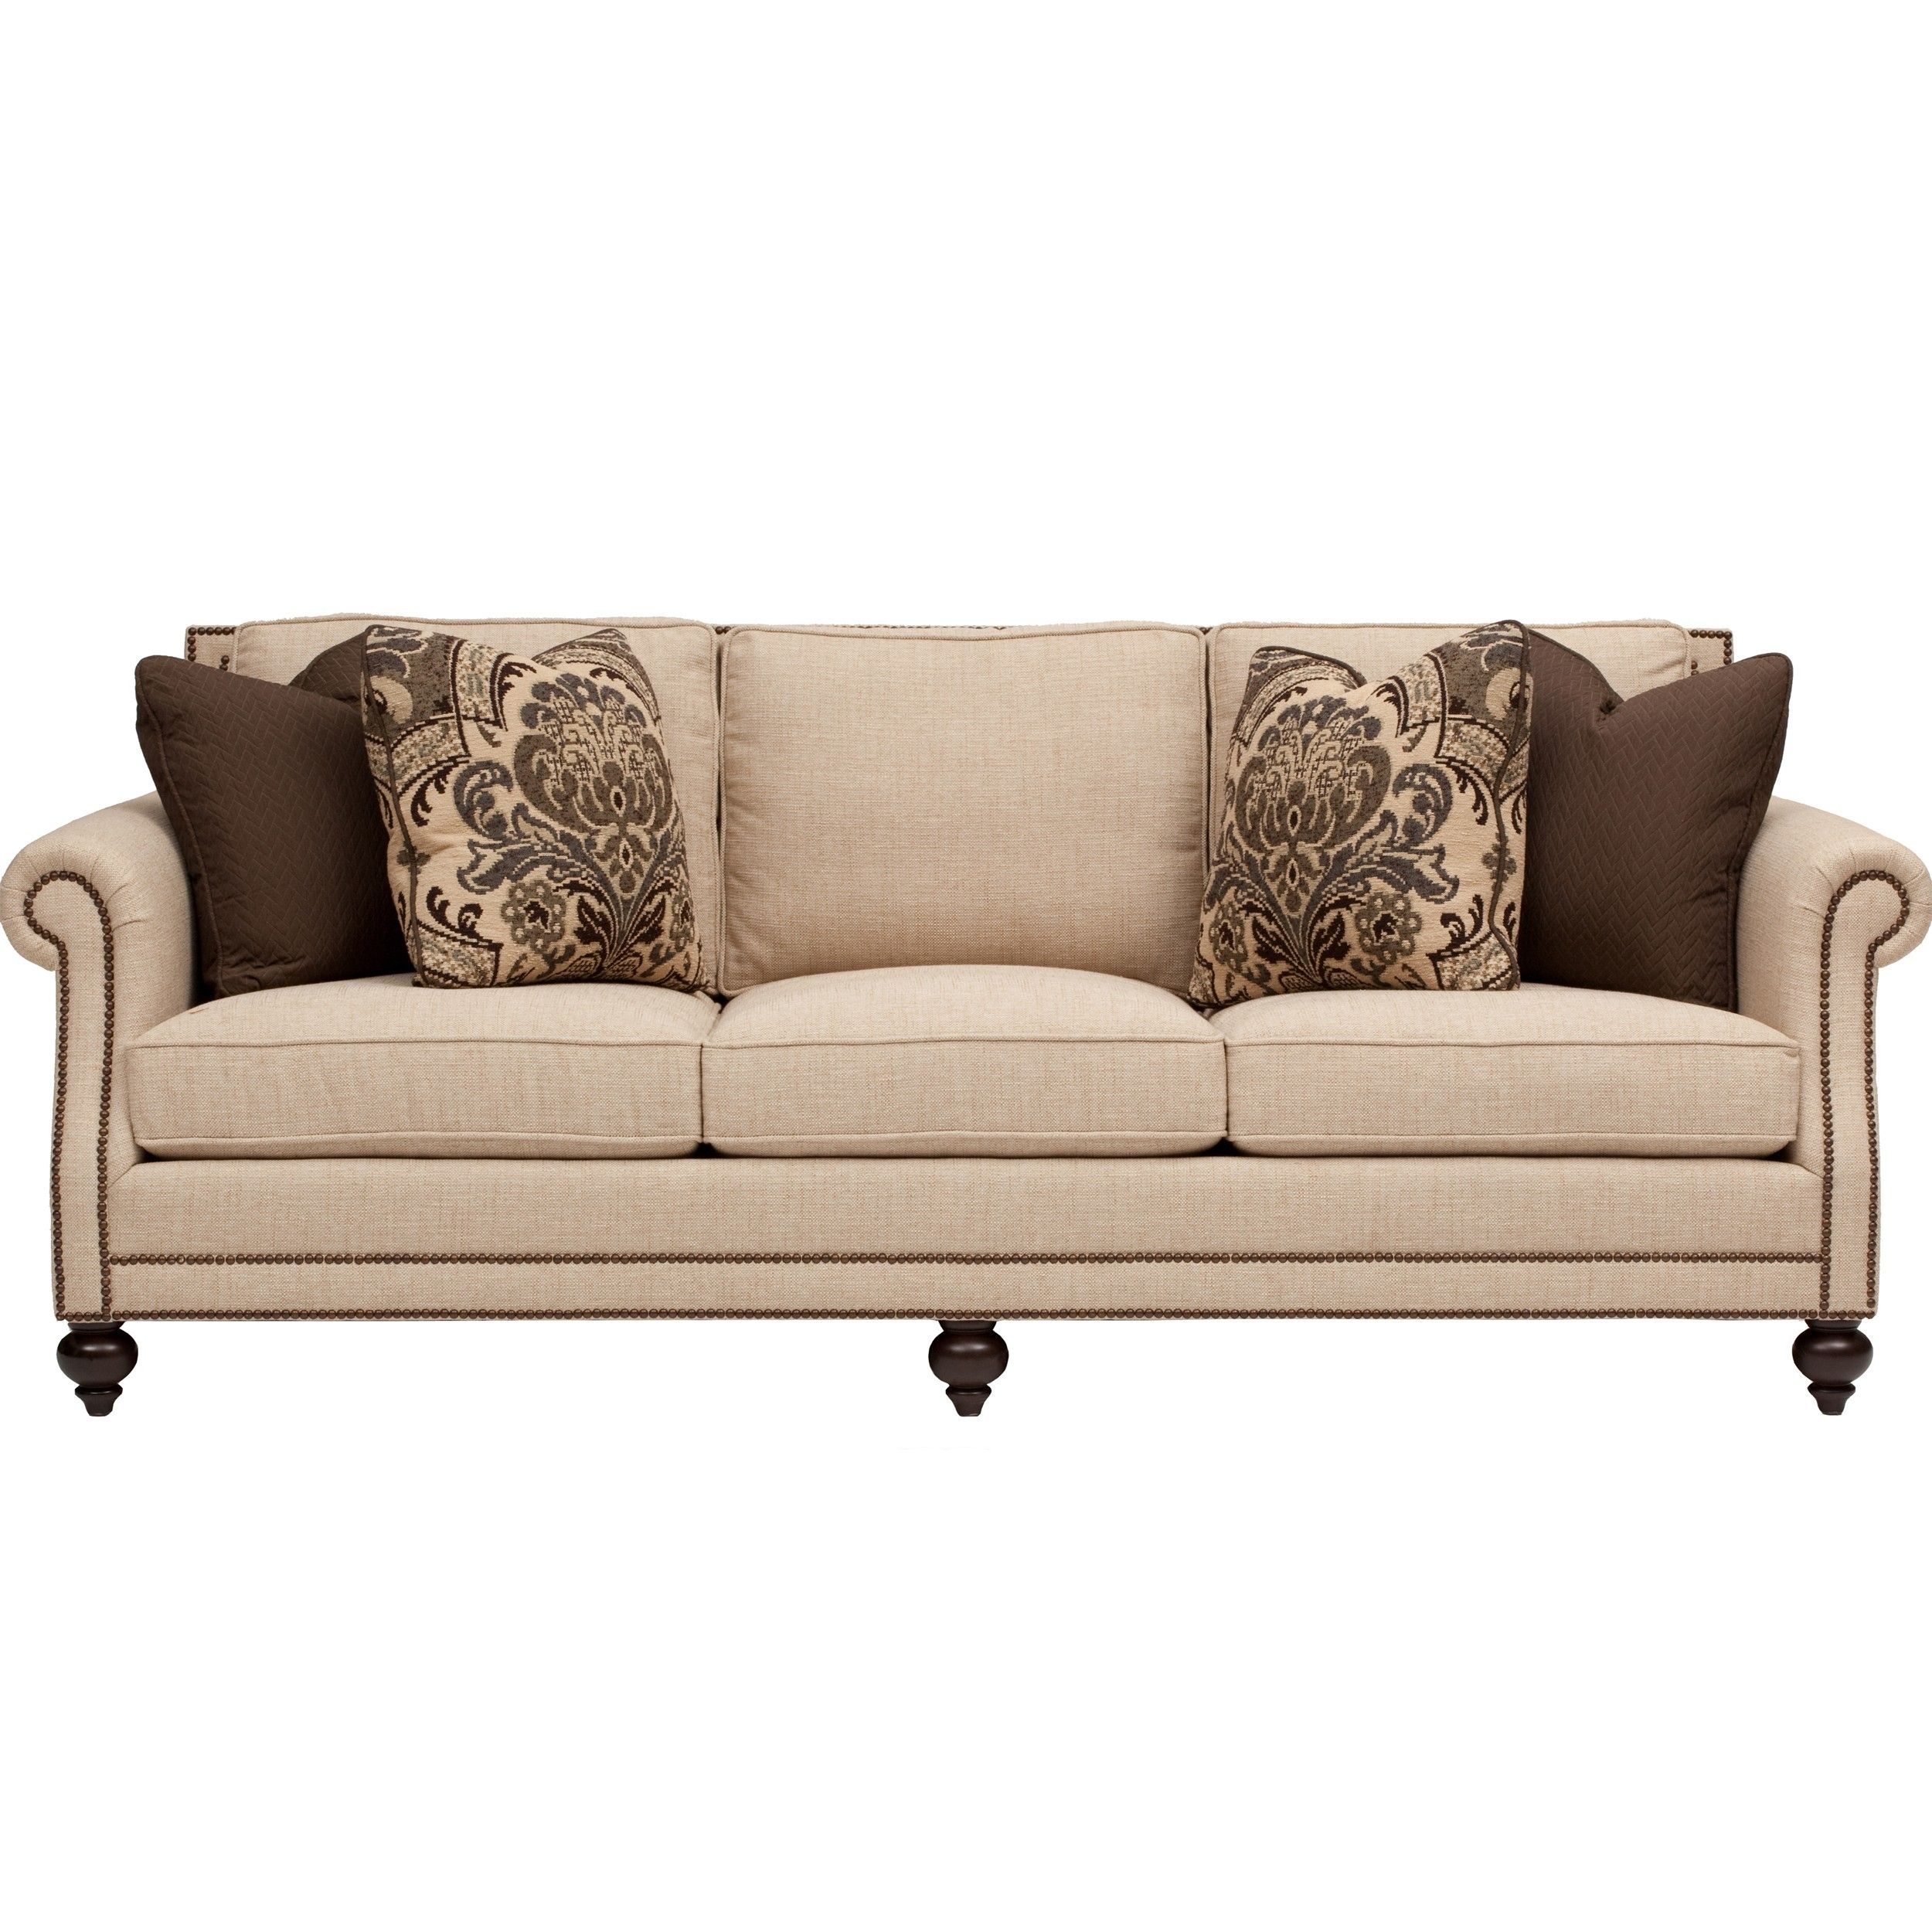 bernhardt cantor leather sofa price mint green bed nailhead living room style best site